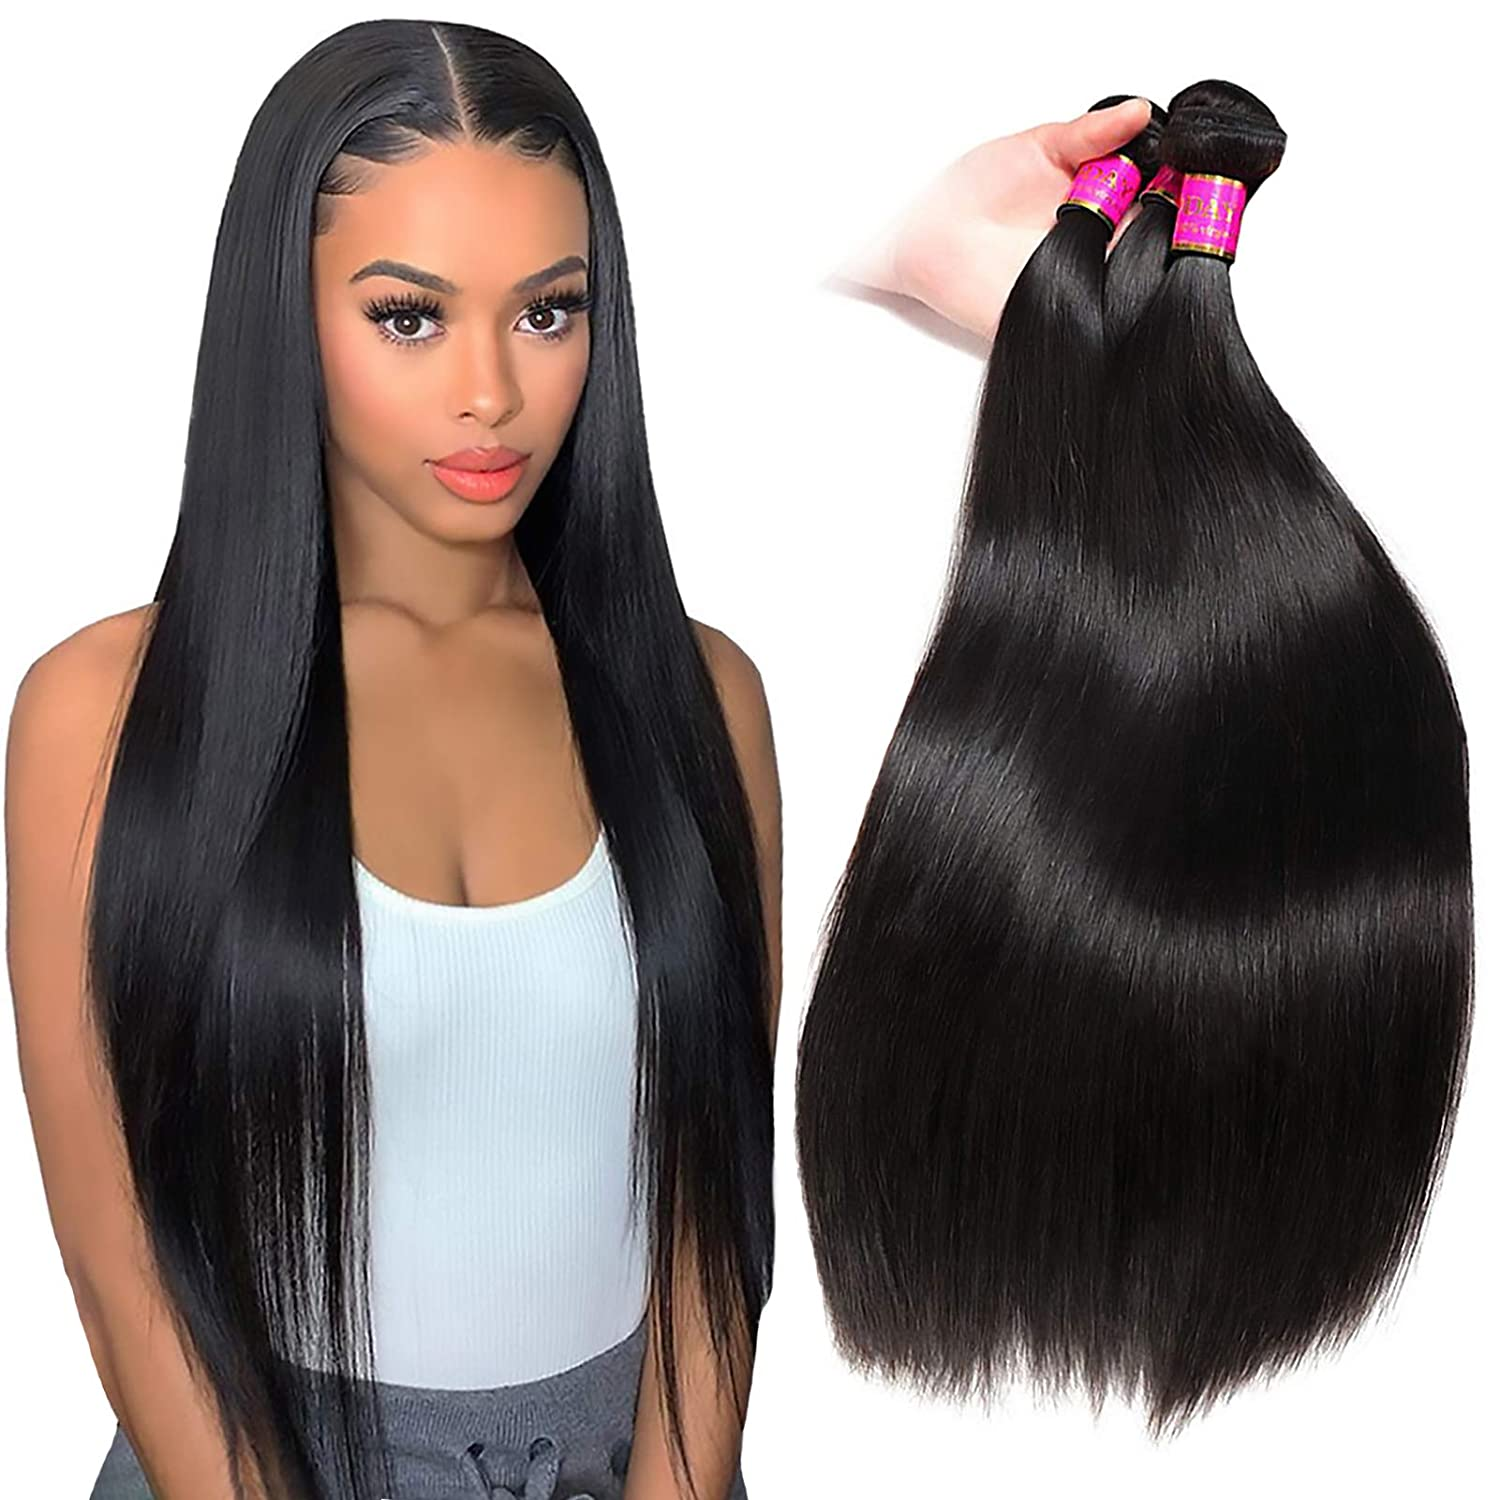 TodayOnly gift 10A Grade Straight 3 Bundles Inch 12 14 of 5 ☆ popular Brazil